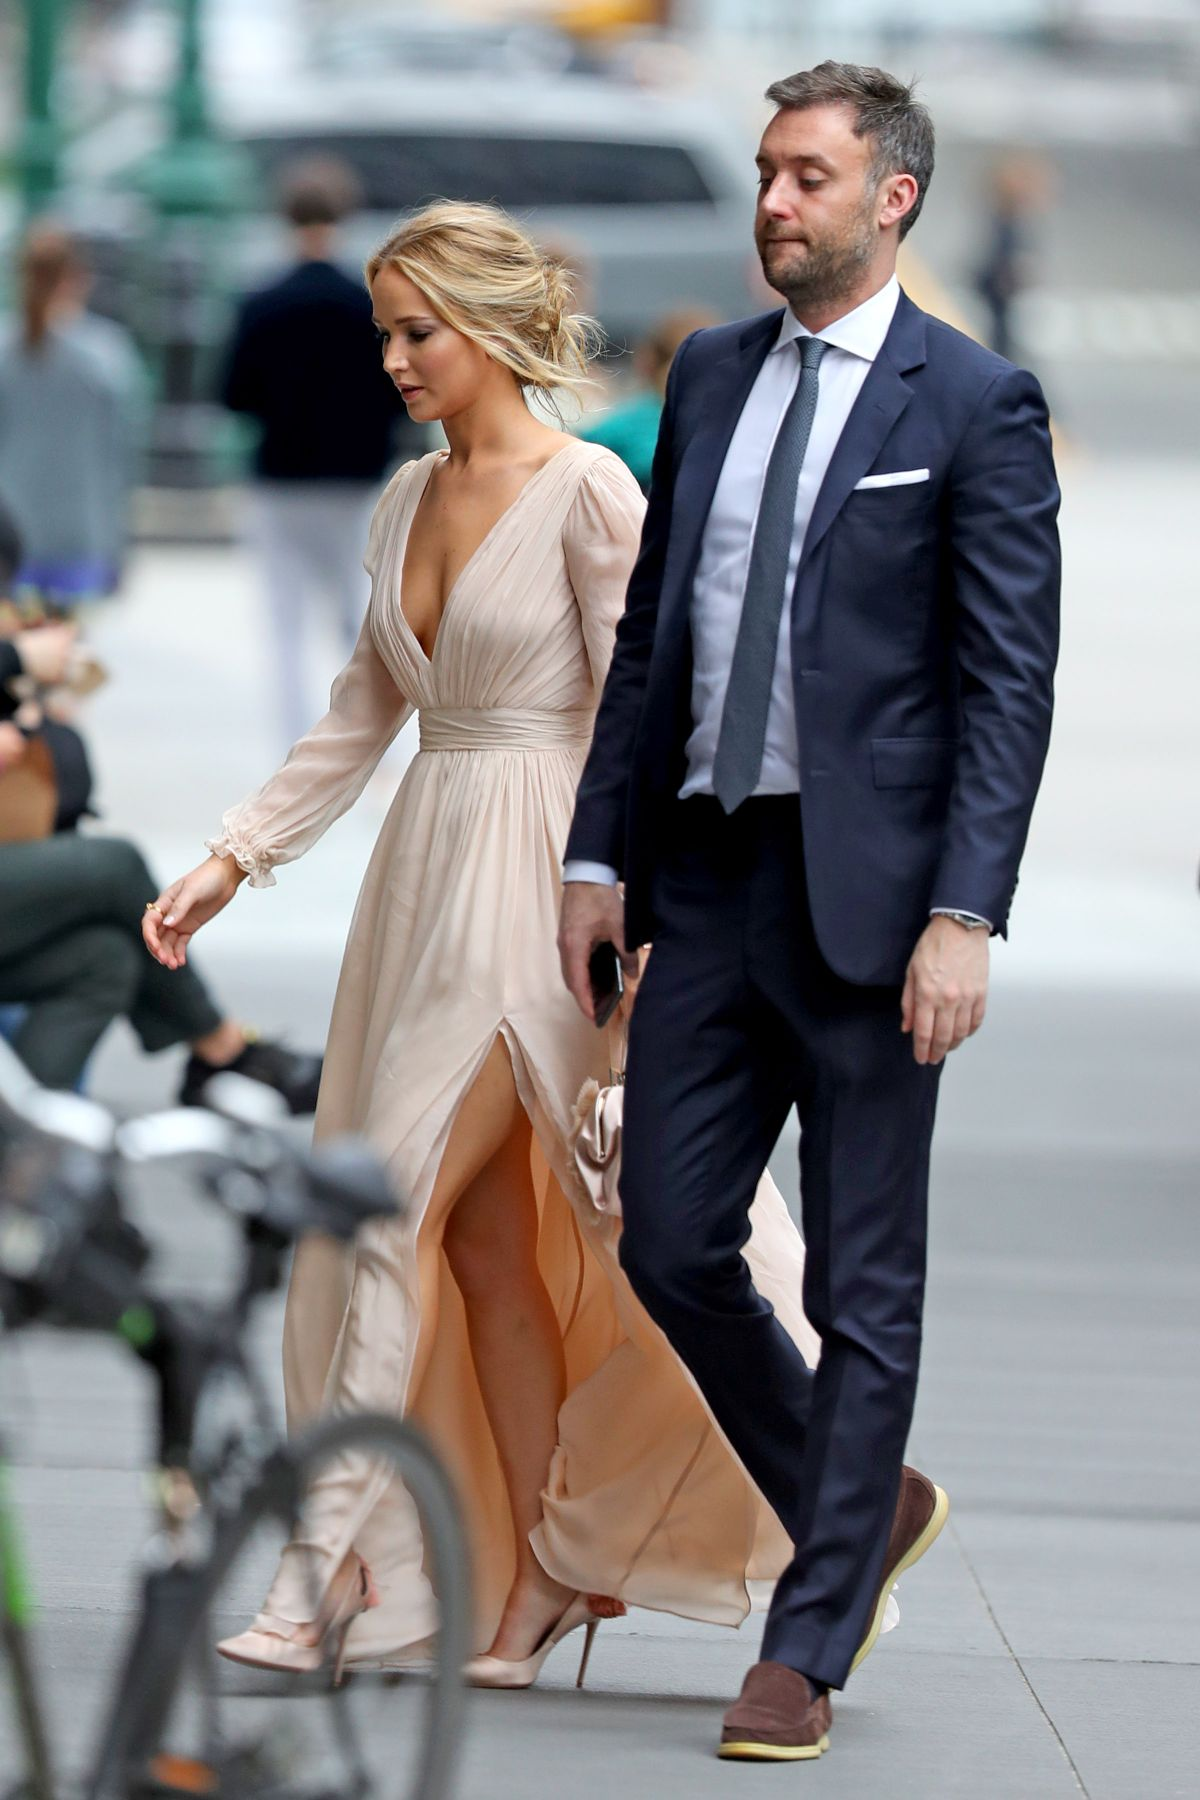 inkl - Jennifer Lawrence and Cooke Maroney wedding: From